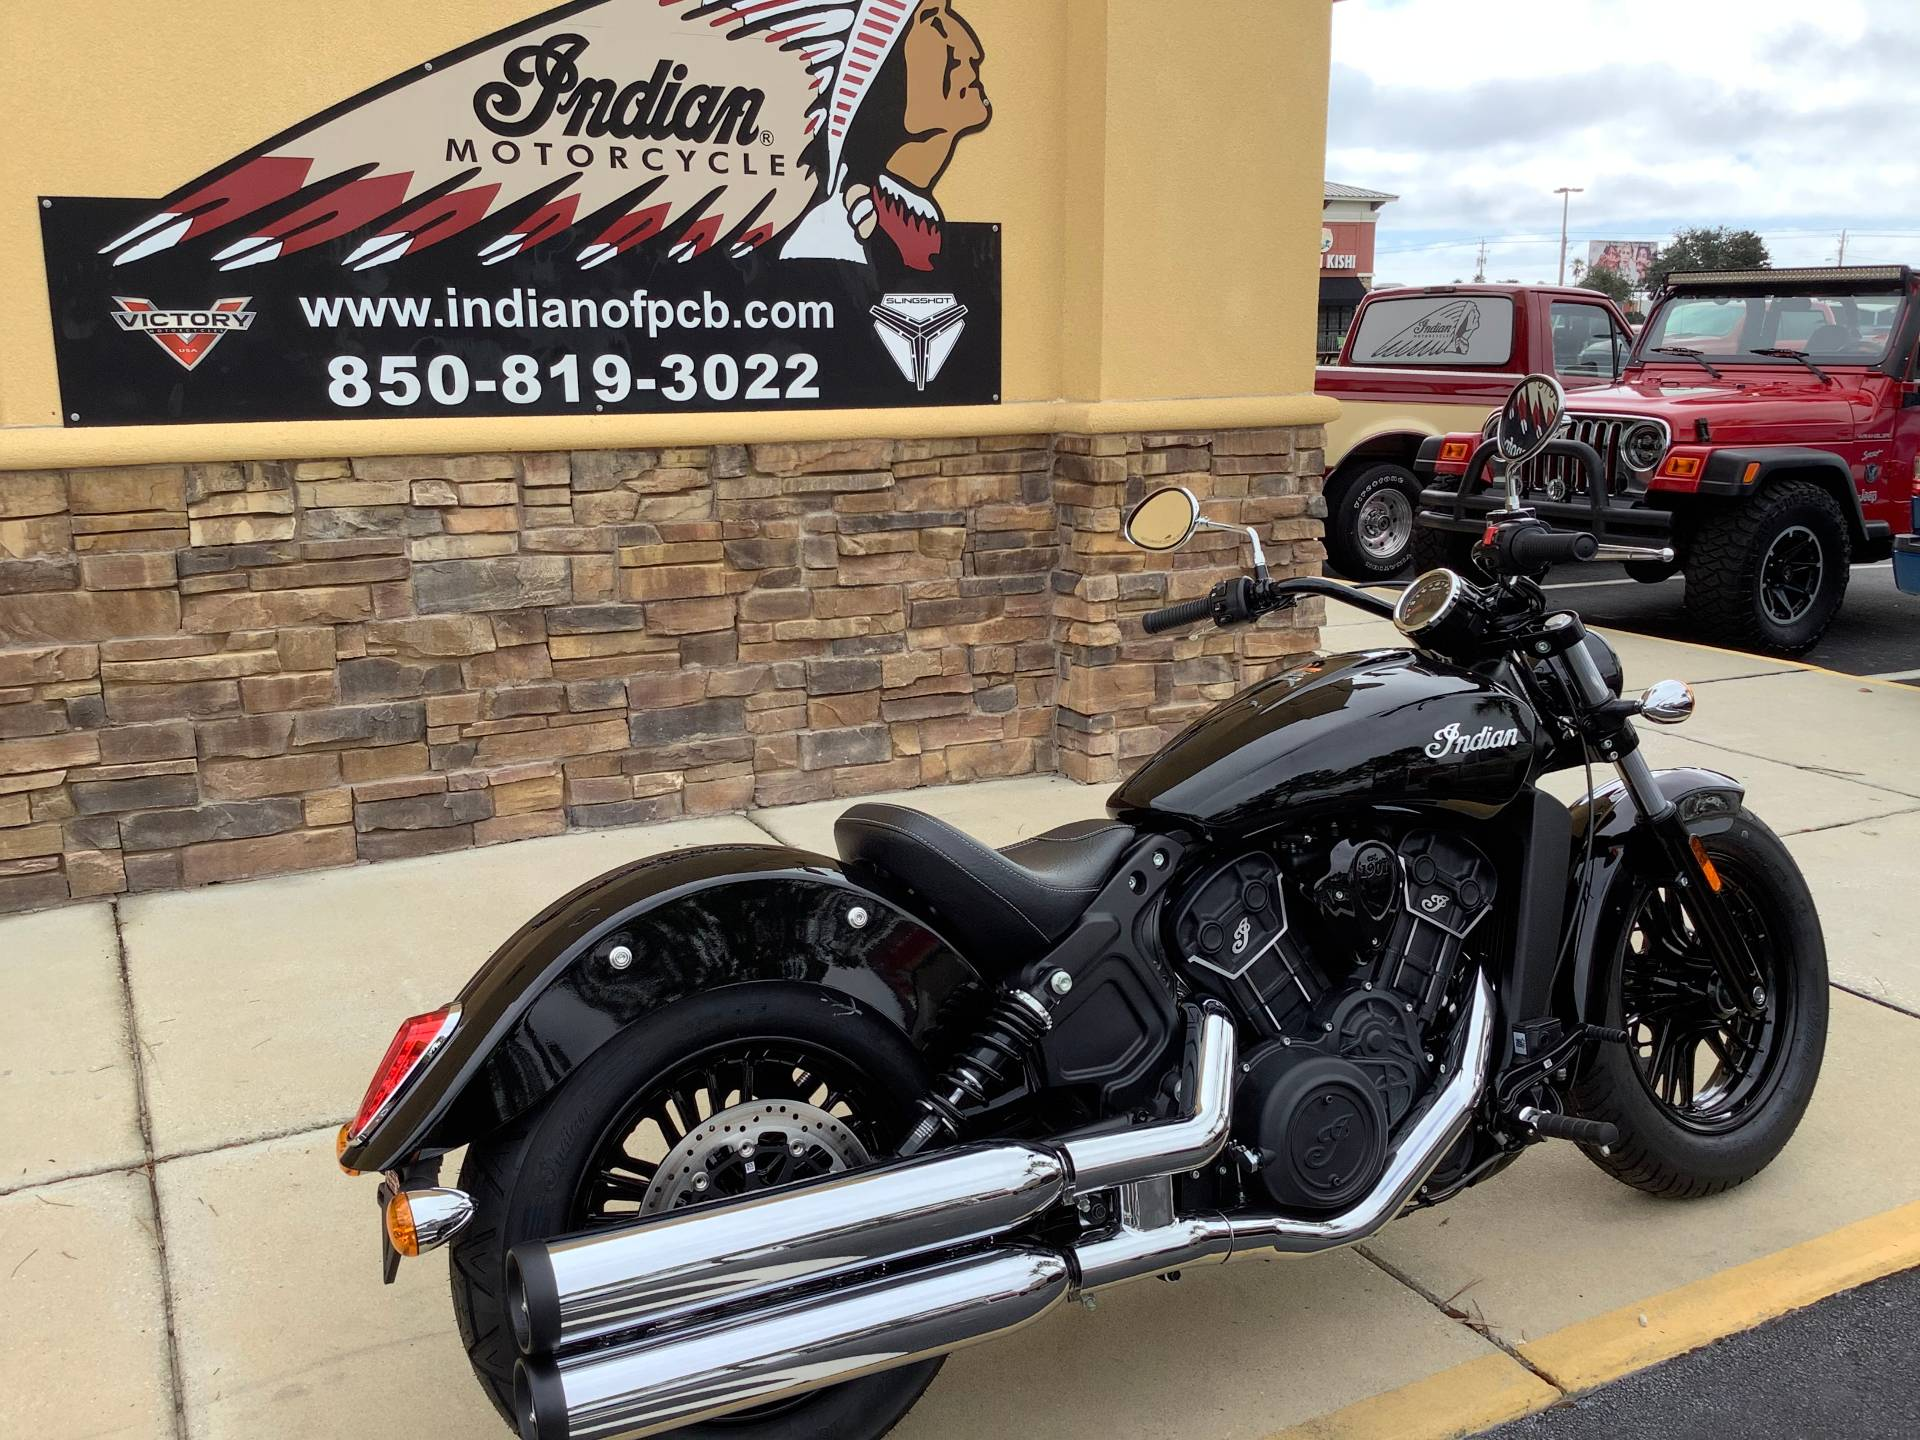 2021 Indian SCOUT 60 in Panama City Beach, Florida - Photo 7